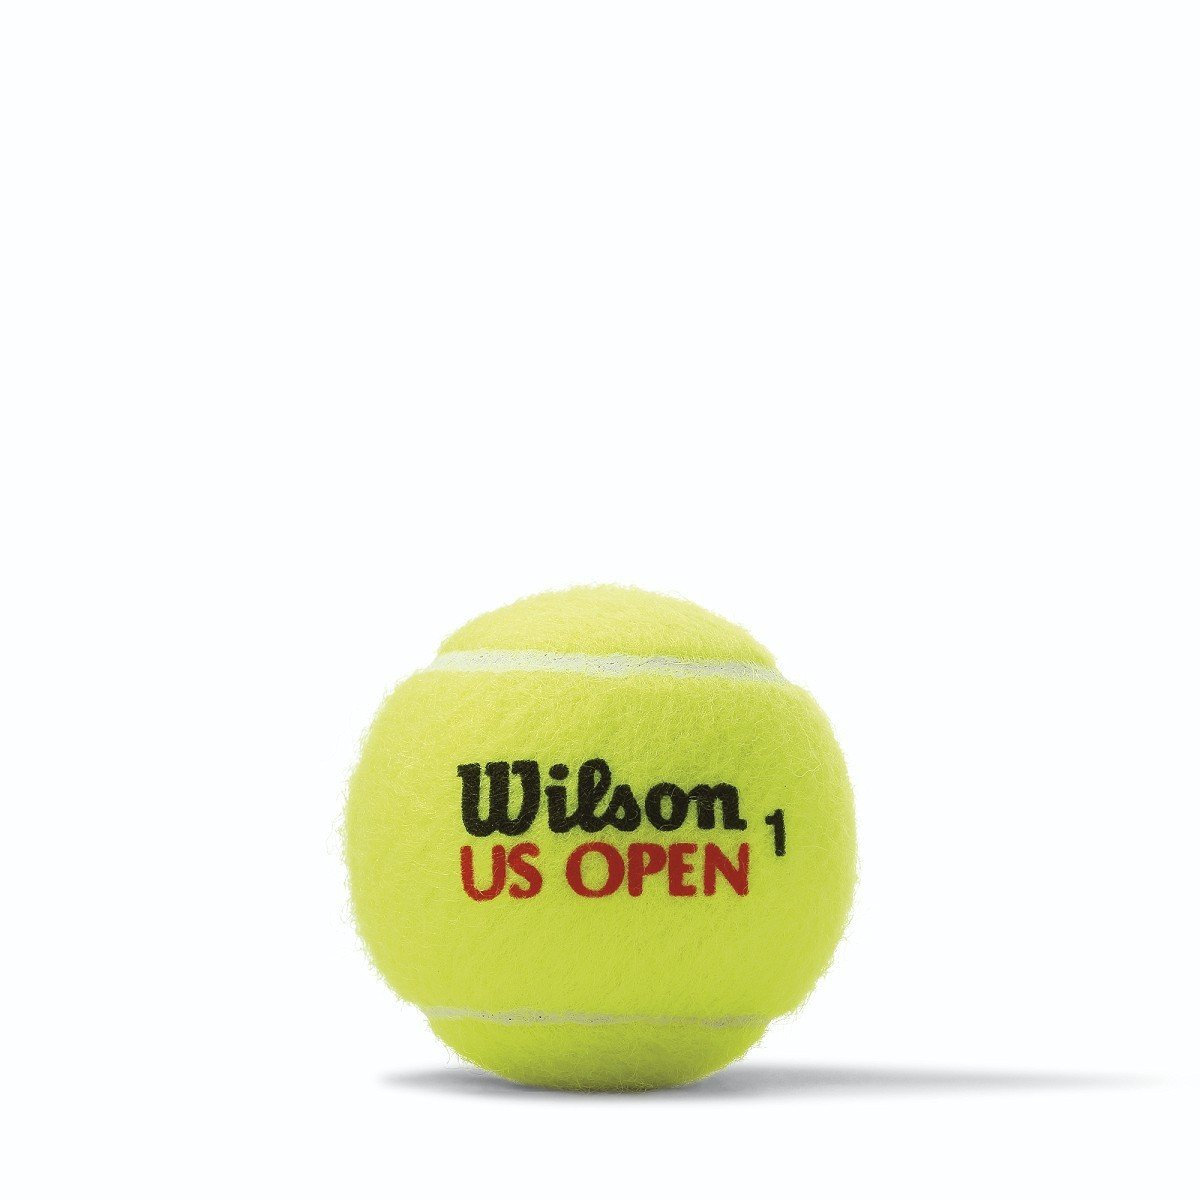 Amazon.com : Wilson US Open Pre-Strung Recreational Tennis Racquet (4 1/2 Inch Grip) Kit or Set Bundled with (1) Can of 3 Can of 3 US Open Extra Duty Tennis ...